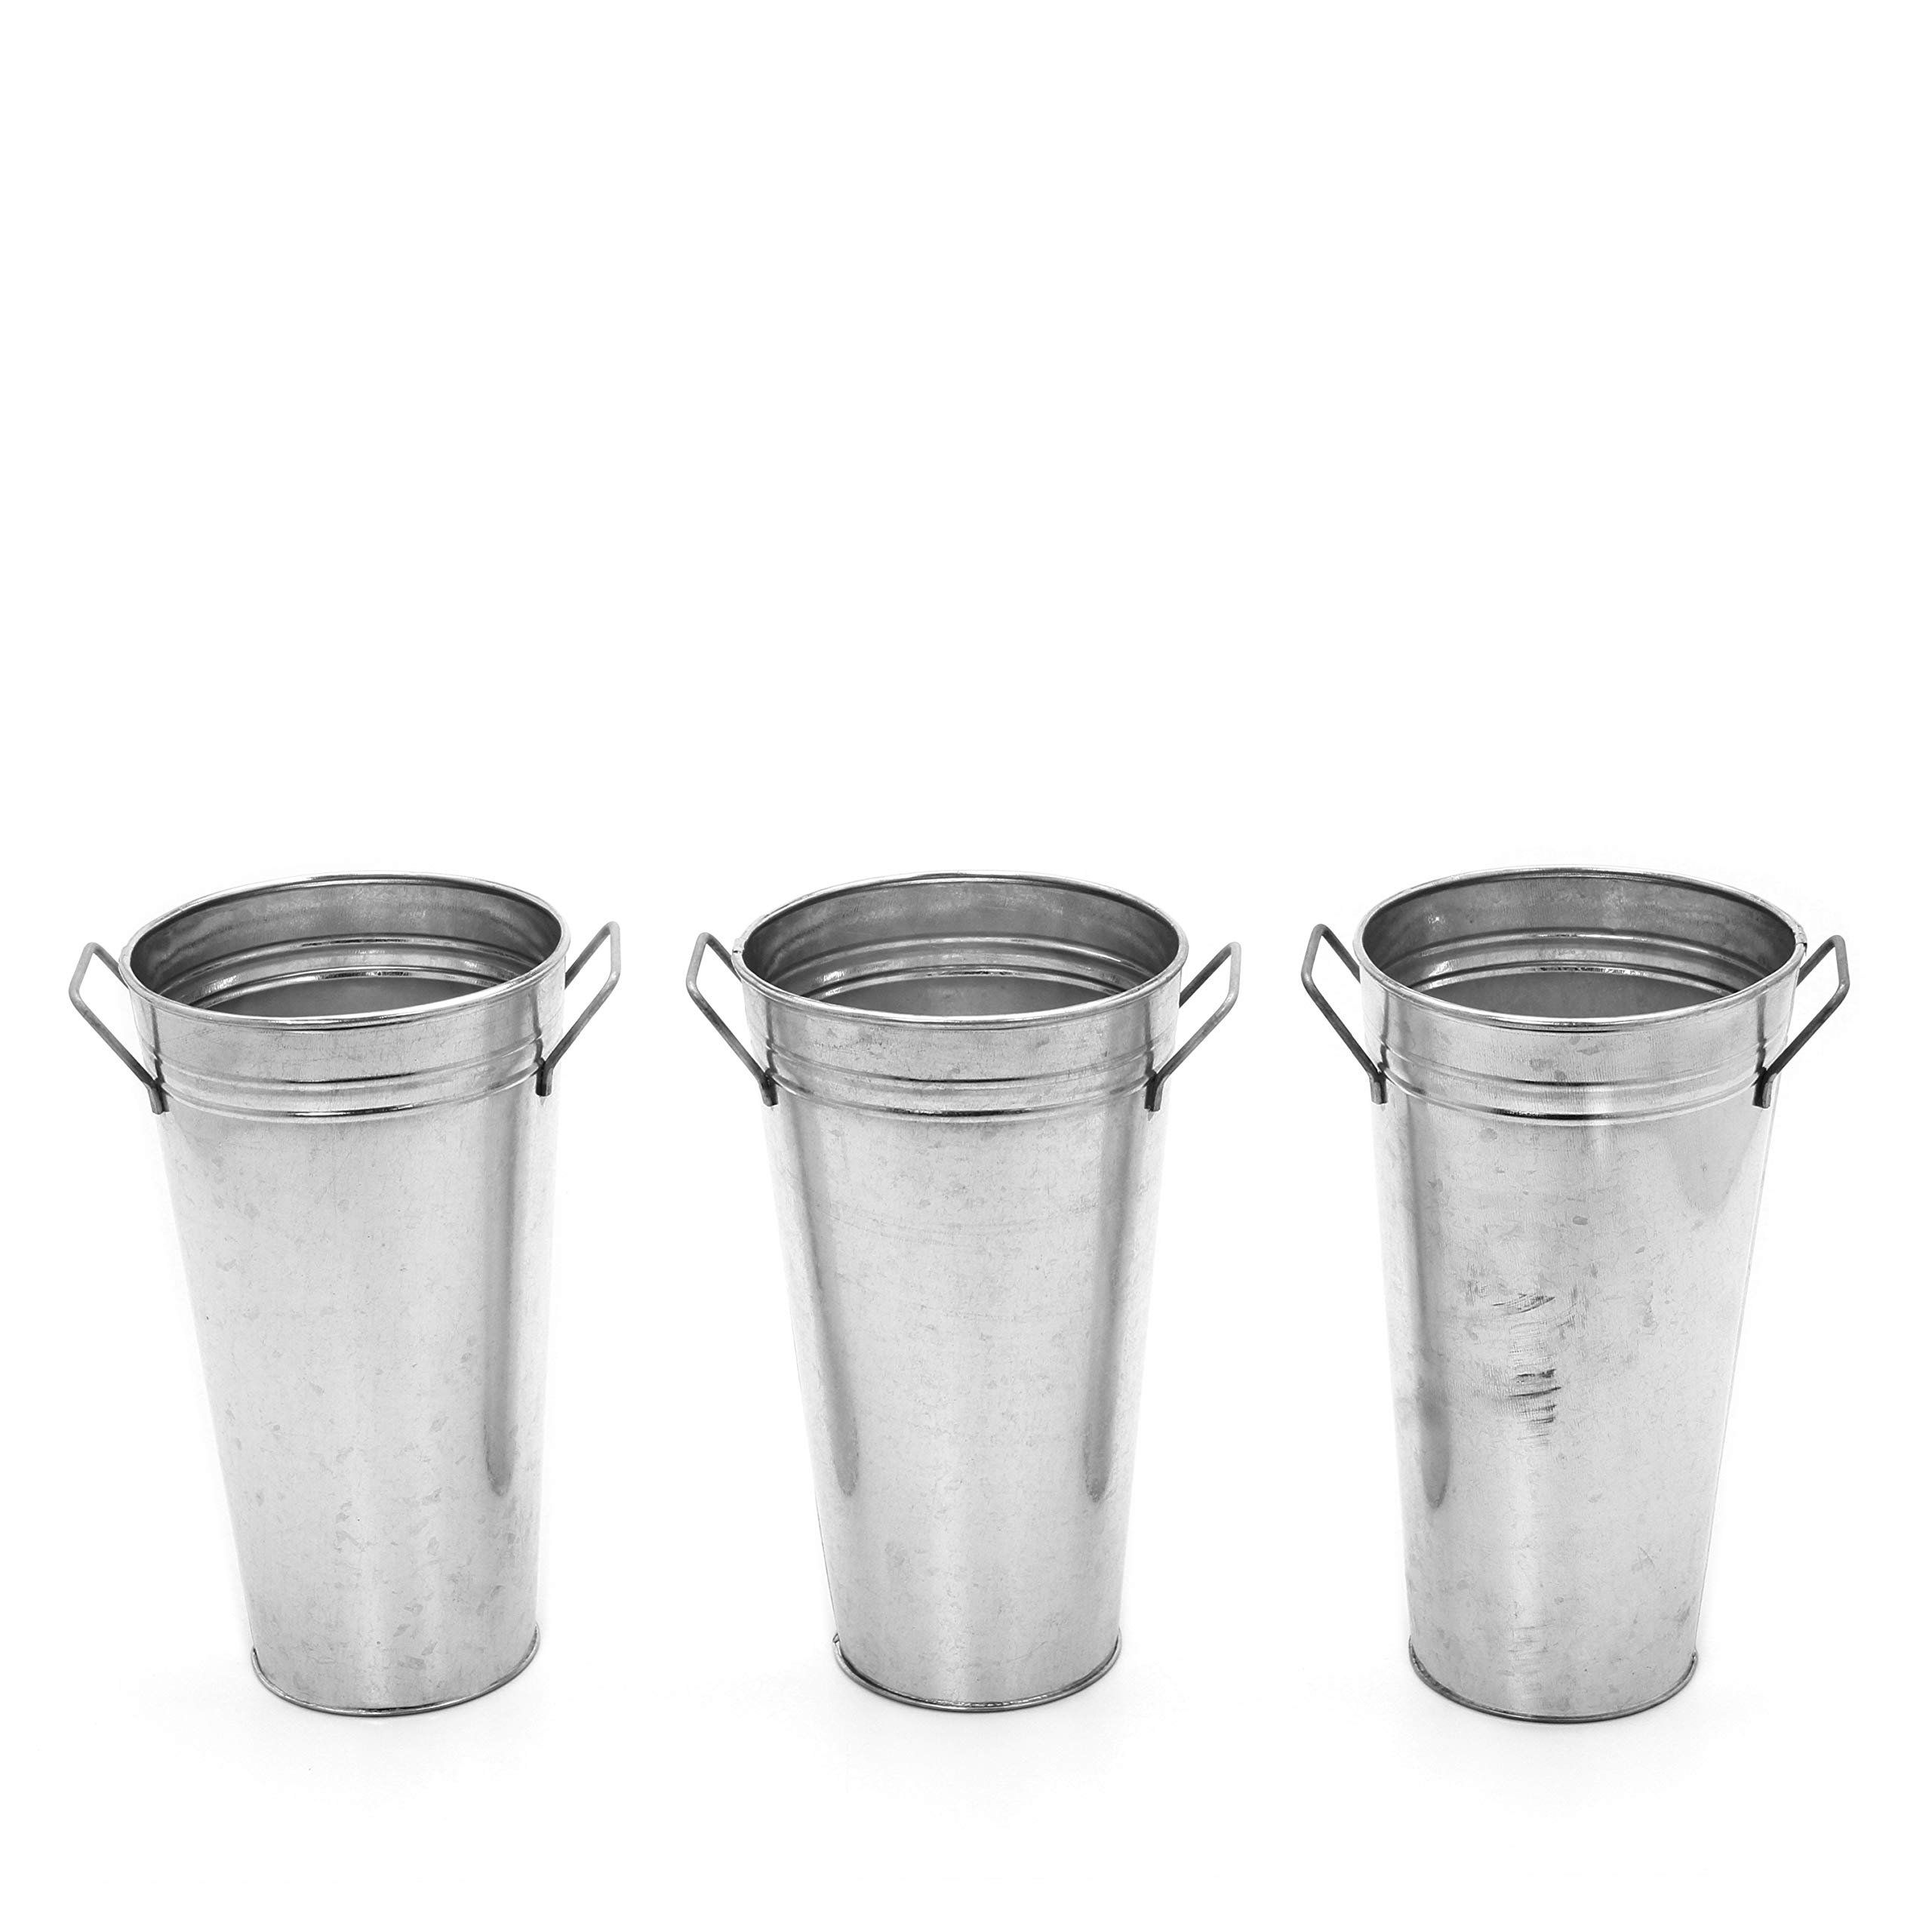 Hosley Set of 3 Galvanized French Bucket/Vase with Handles- 9'' High. Ideal for Dried Floral Arrangements at Home, for Weddings Gift, Spa and Aromatherapy Settings O5